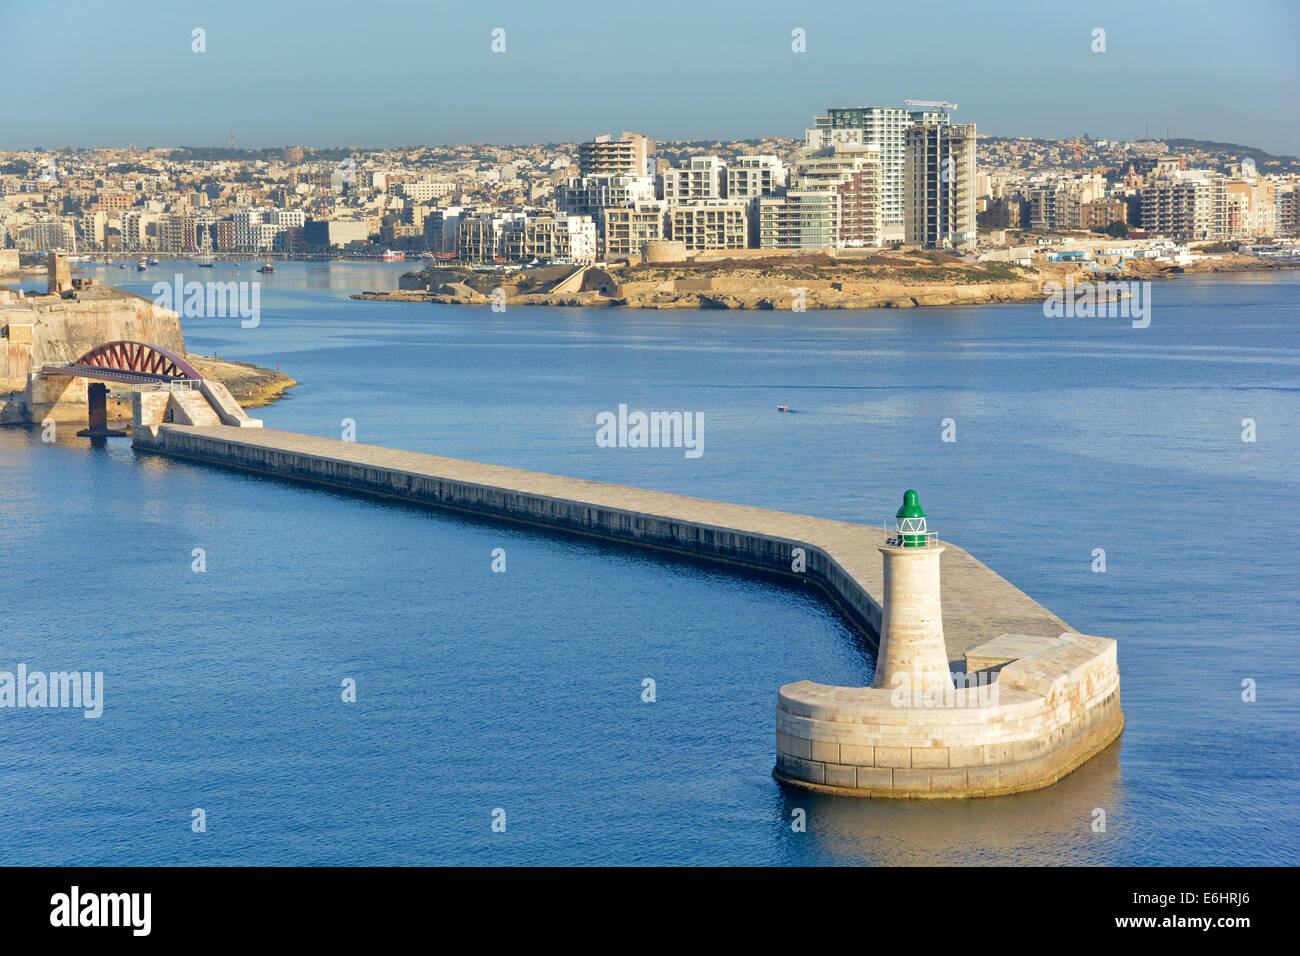 Green channel light on end of Grand Harbour wall with Saint Elmo Bridge and modern high rise building development - Stock Image